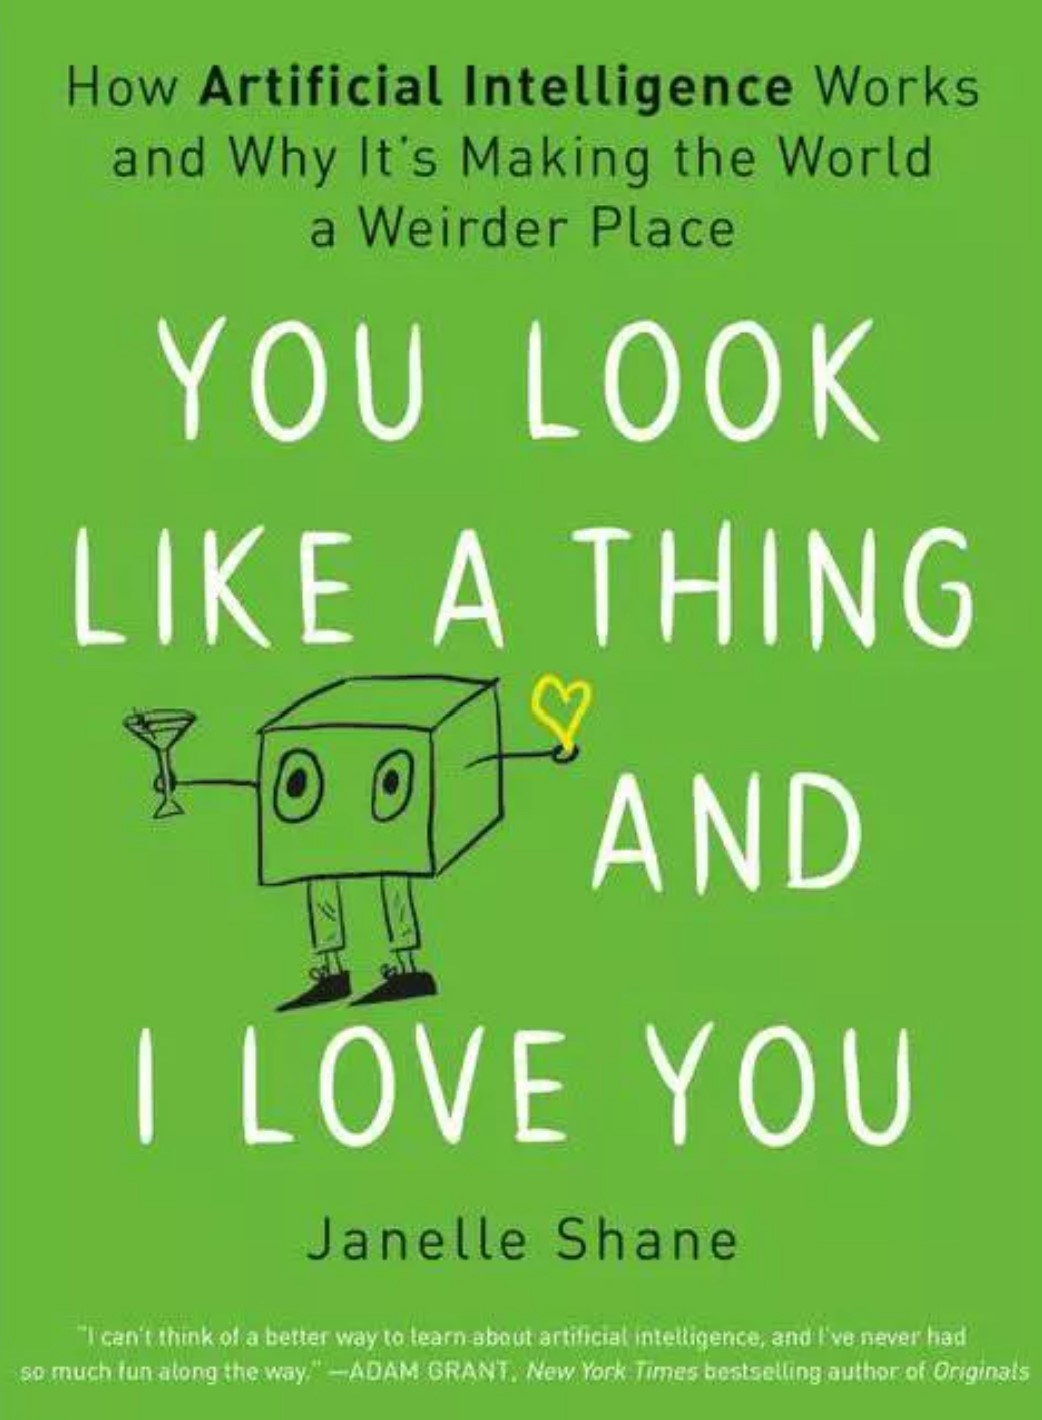 The cover of You Look Like A Thing And I Love You by Janelle Shane